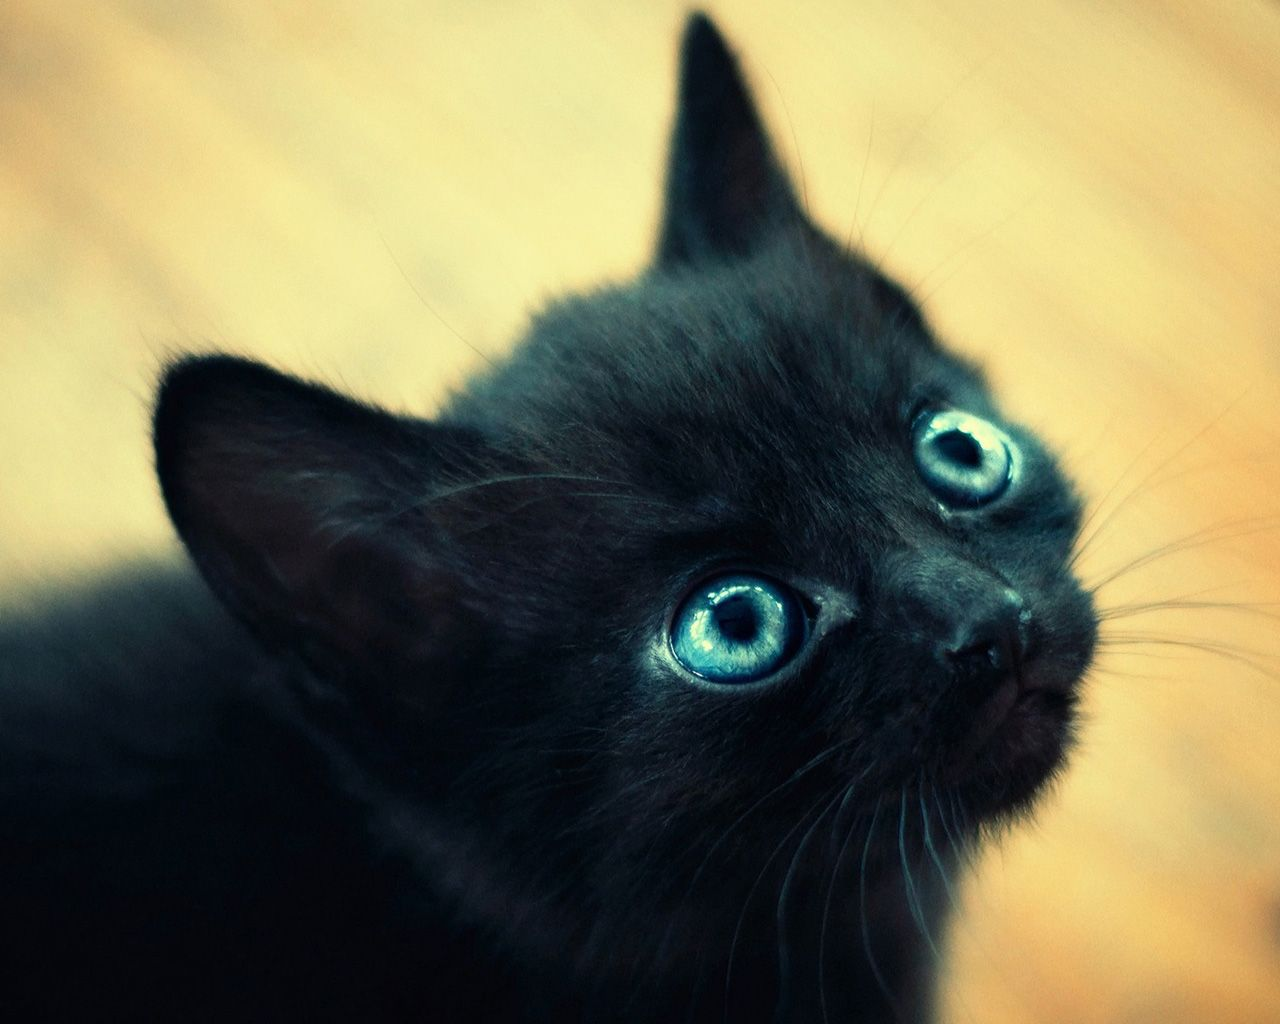 Black Cat With Big Blue Eyes Cat With Blue Eyes Cute Black Kitten Kitten Wallpaper